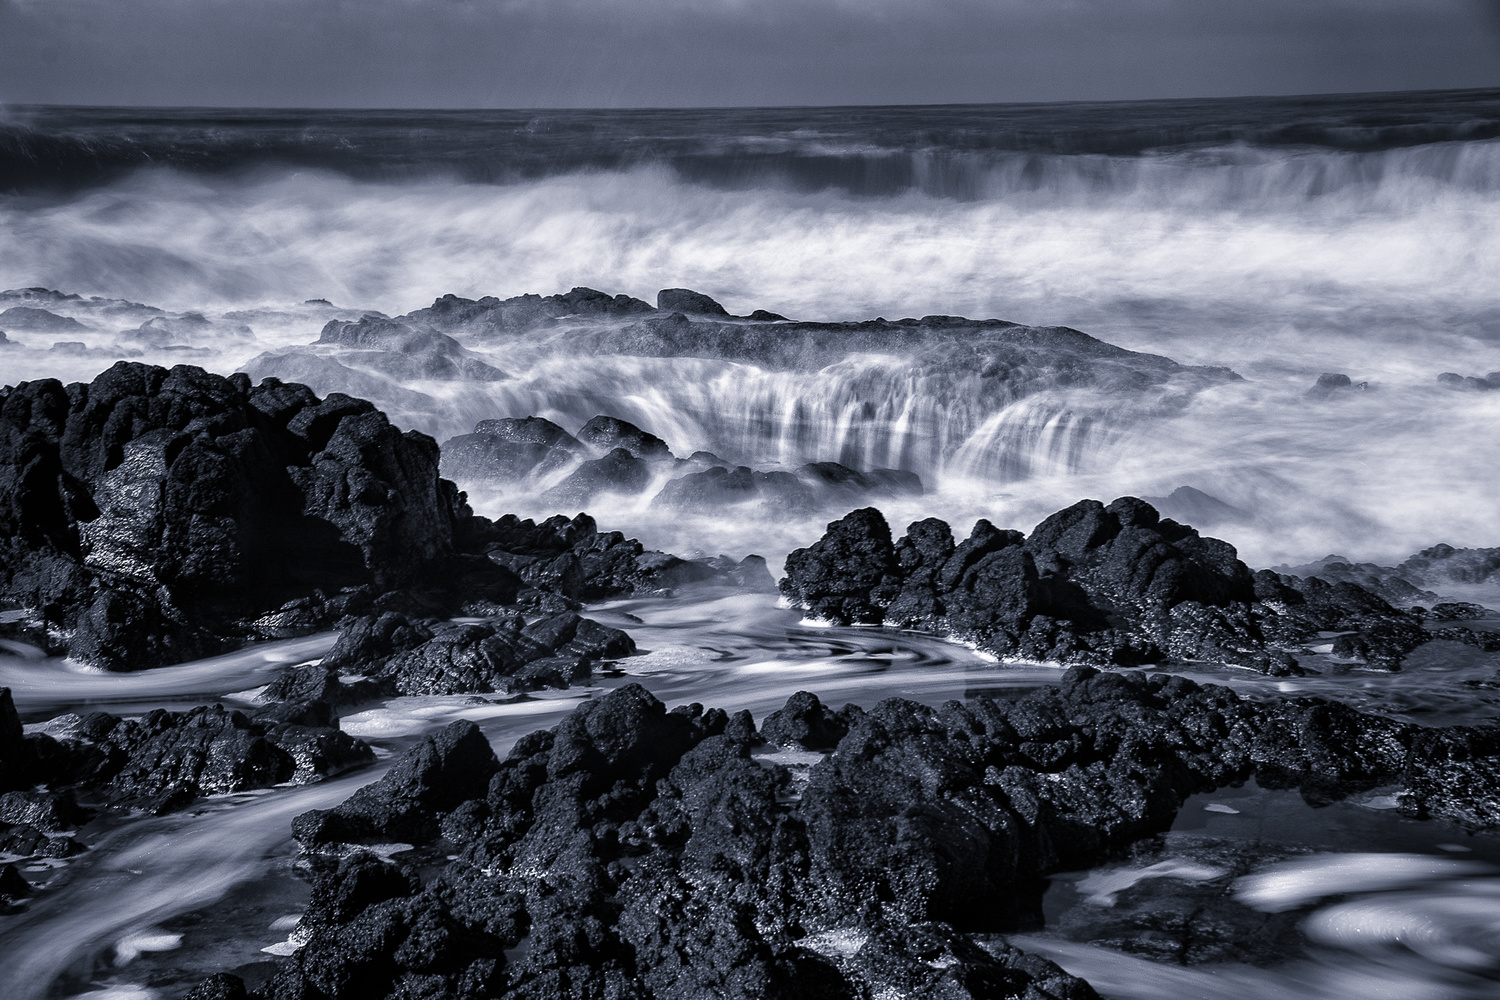 Thors well by Mariano de Miguel